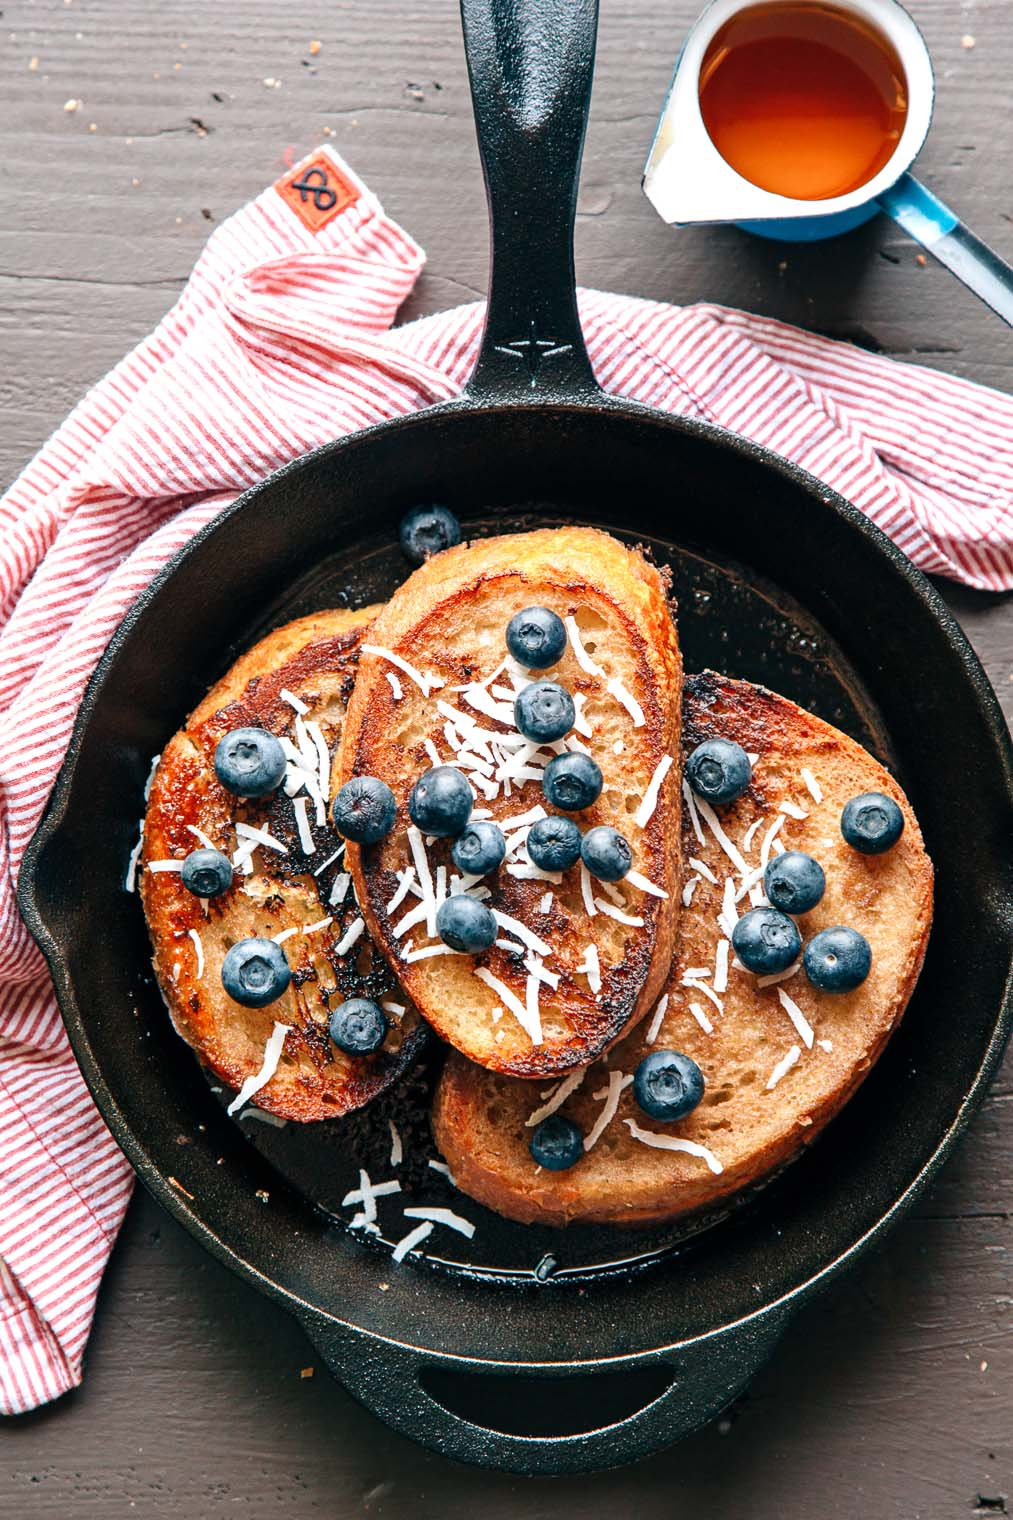 Make this vegan French toast on your next campout. It's an easy breakfast everyone will enjoy!